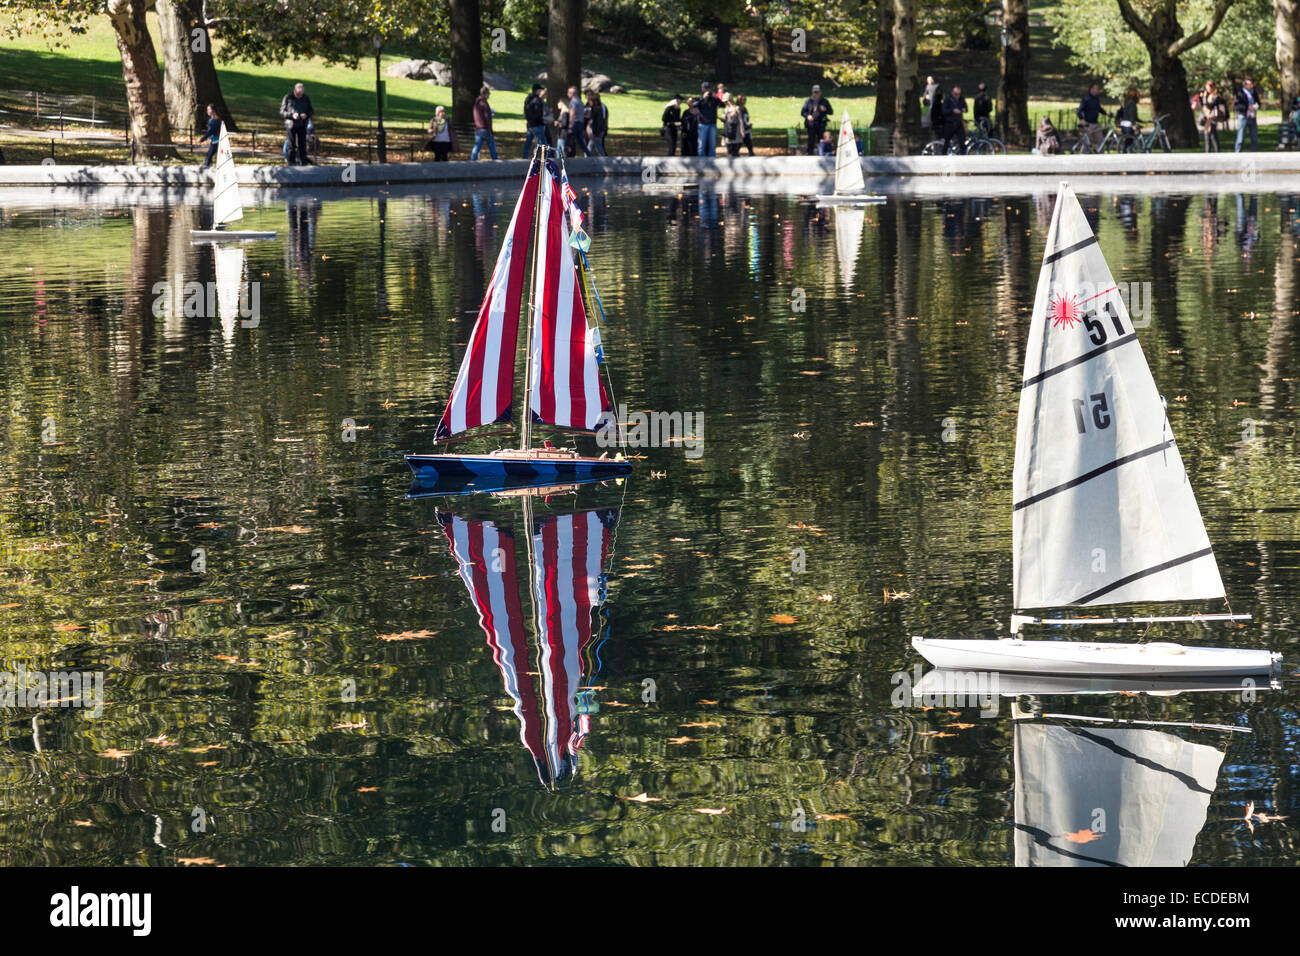 Small Wooden Sailboat Bright Red Stock Photos & Small Wooden